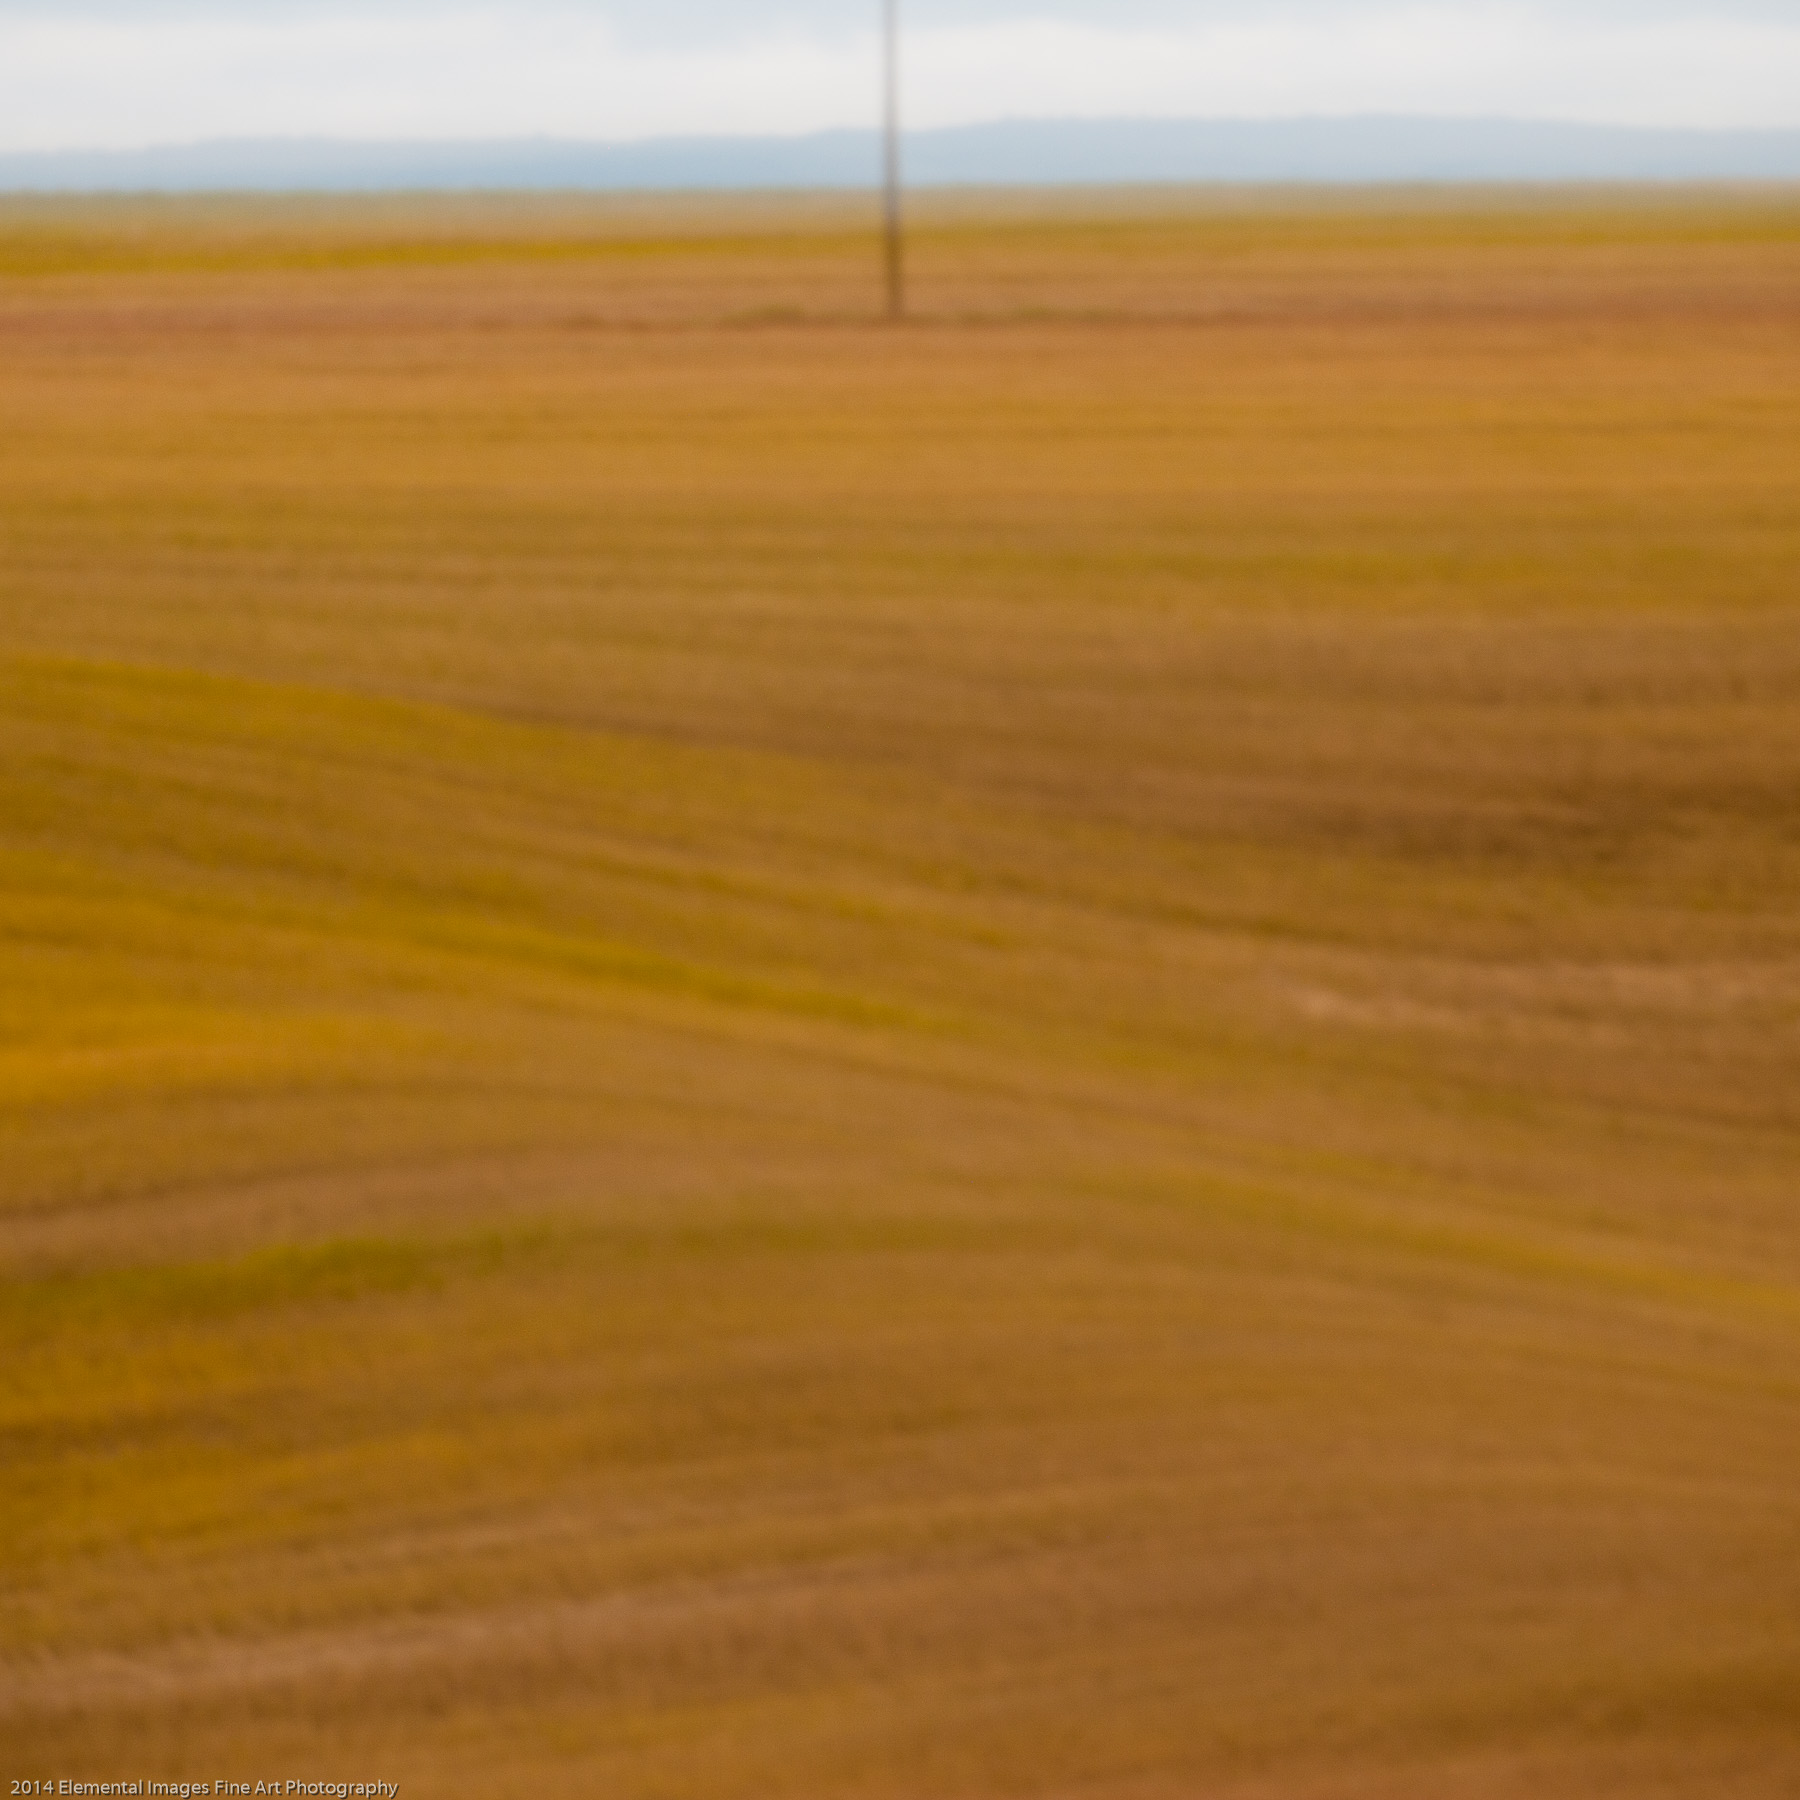 Palouse XLIV | The Palouse | WA | USA - © 2014 Elemental Images Fine Art Photography - All Rights Reserved Worldwide